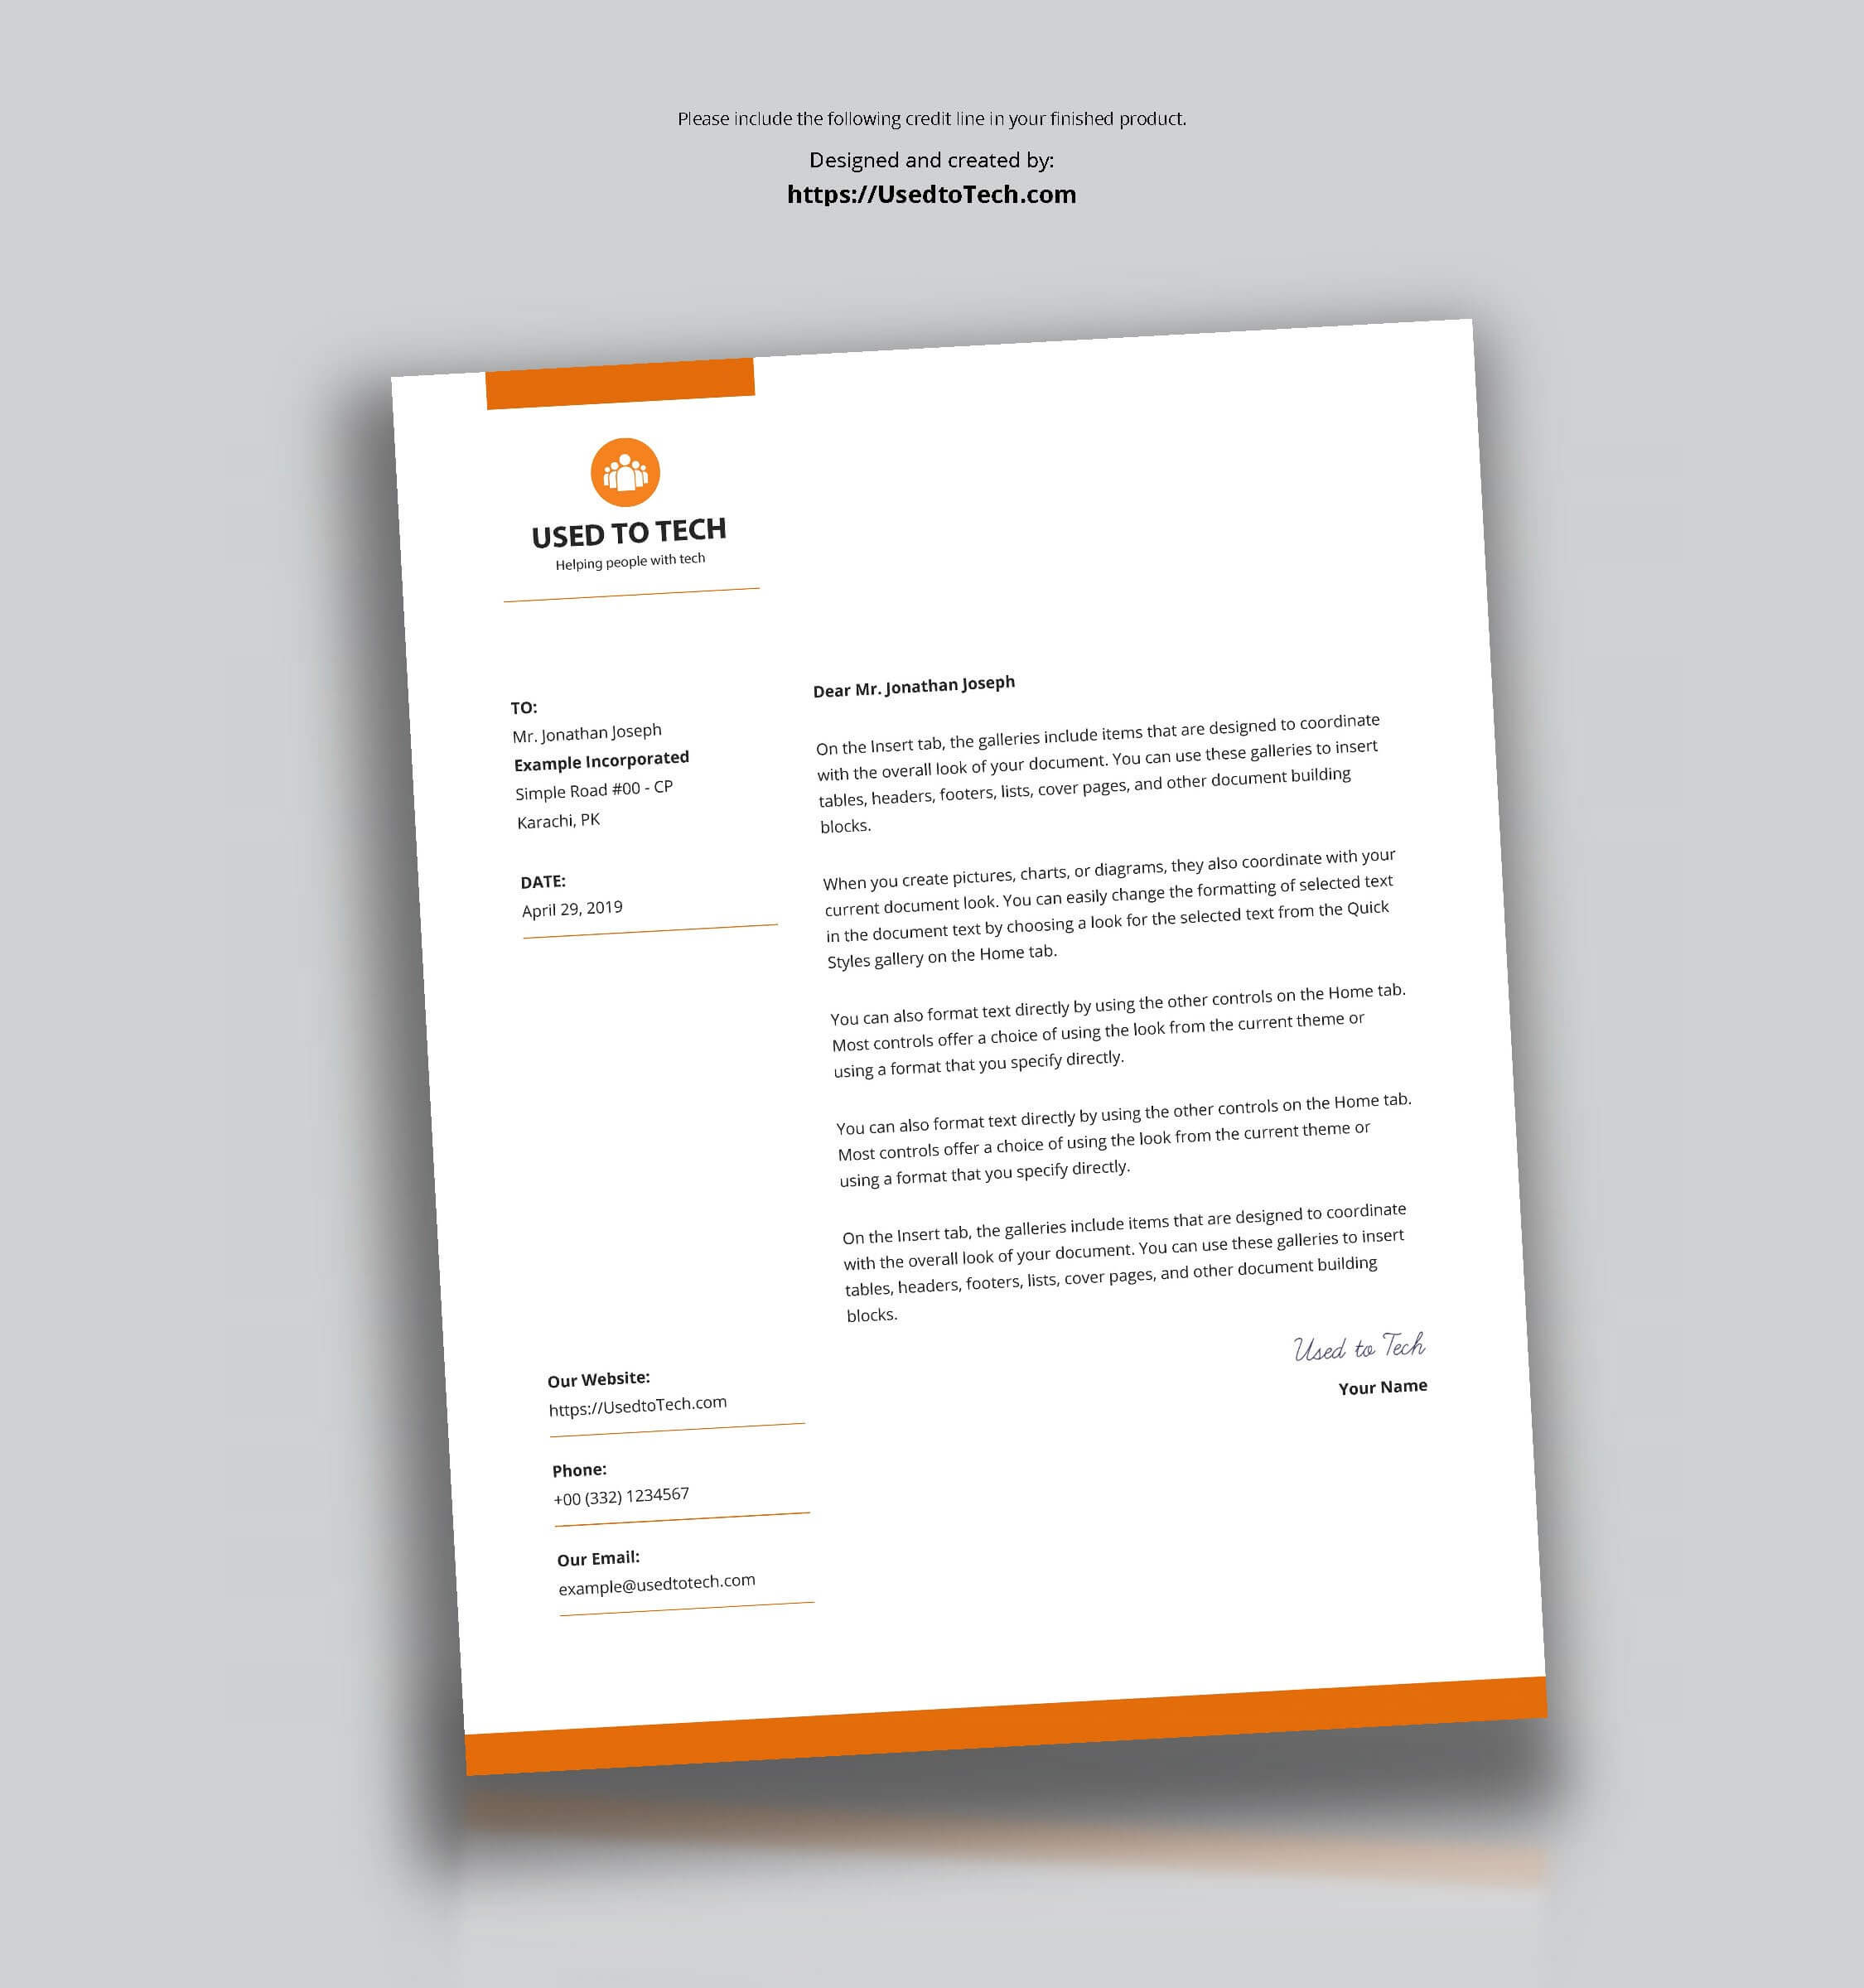 Modern Letterhead Template In Microsoft Word Free - Used To Tech With Free Letterhead Templates For Microsoft Word